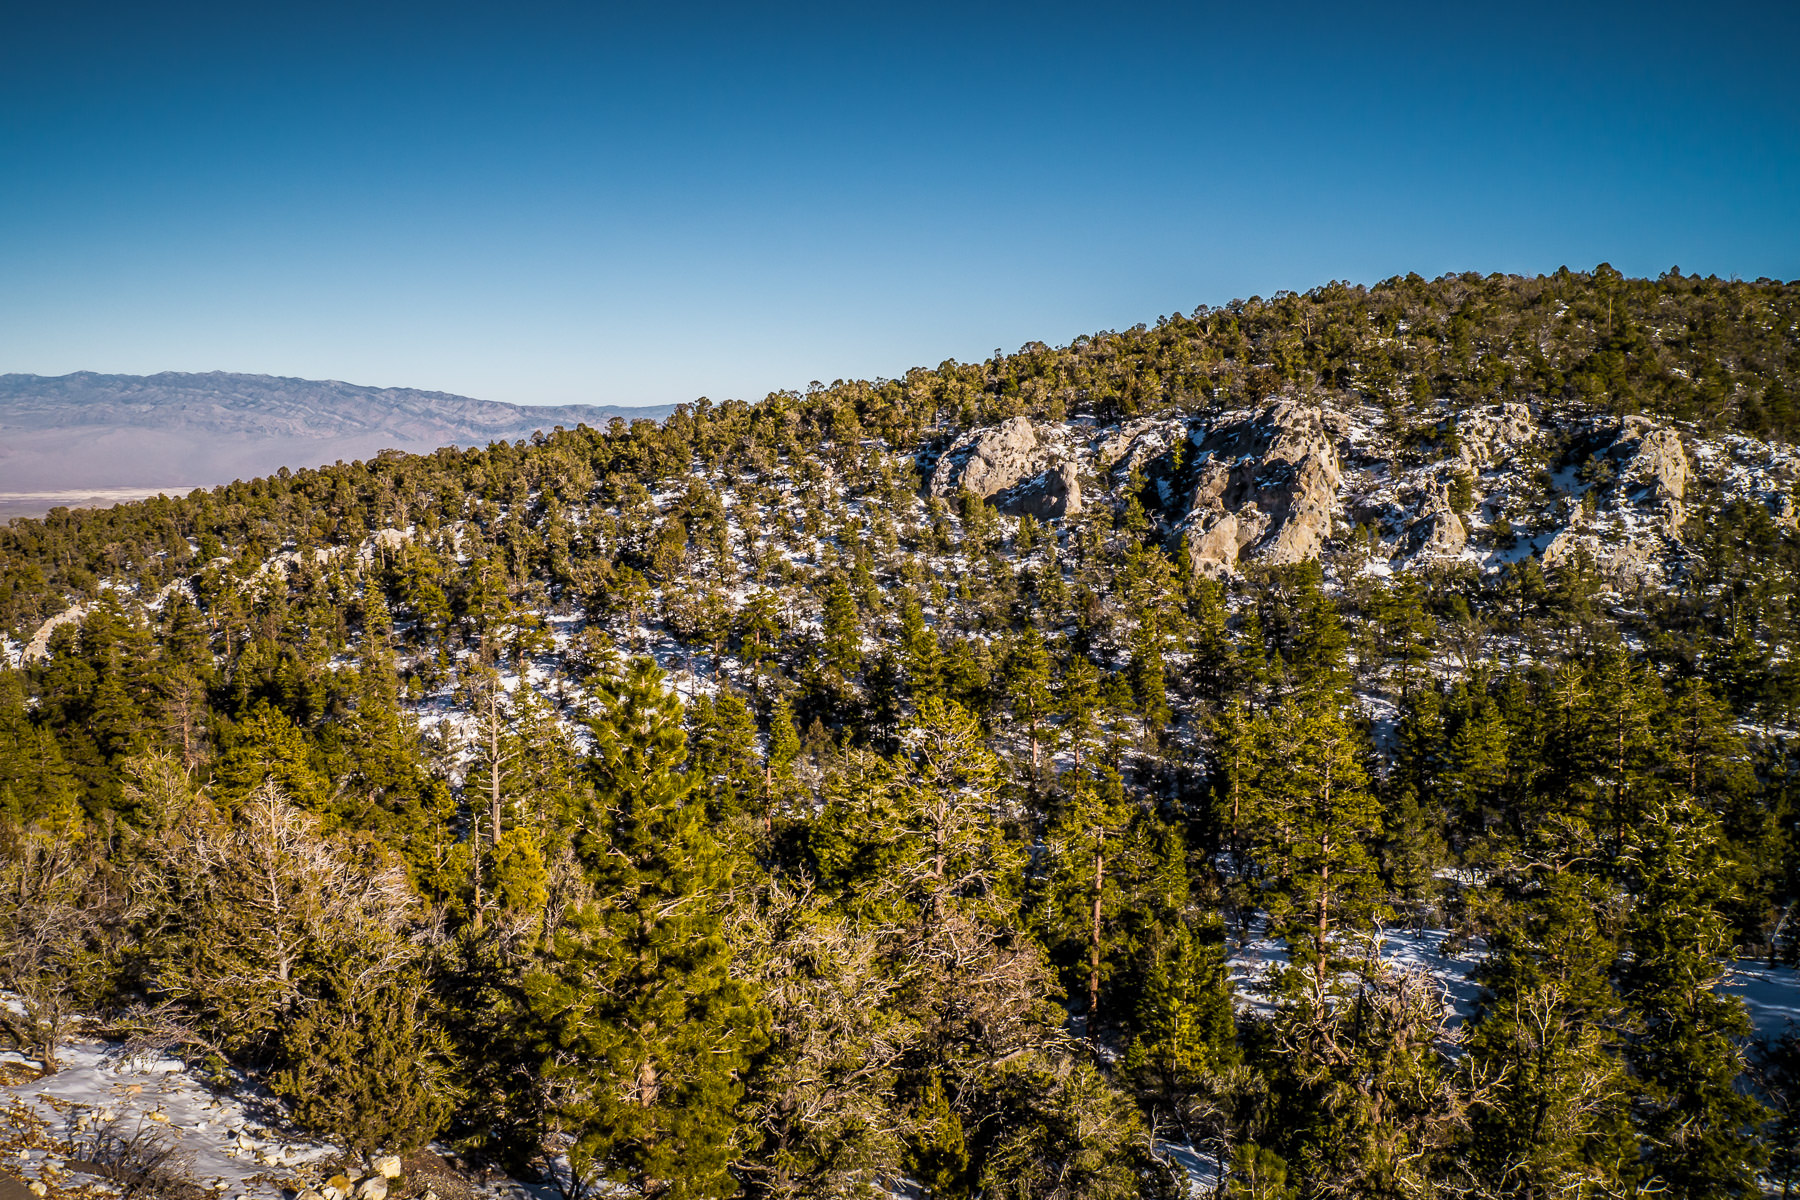 Trees grow in the snowy foothills of Nevada's Mount Charleston.